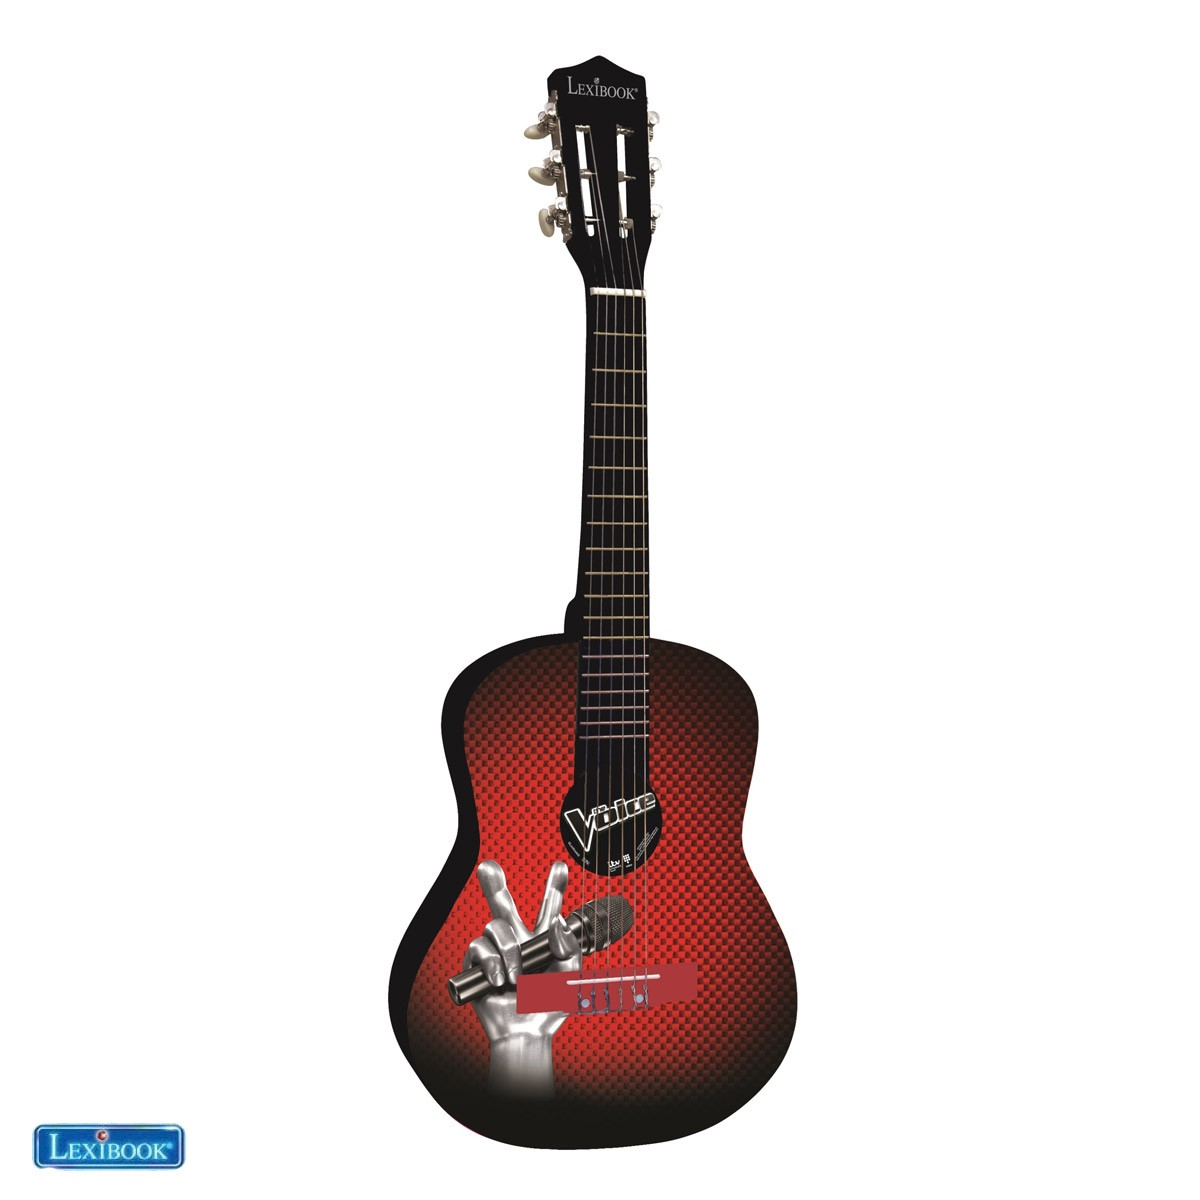 Lexibook The Voice La Plus Belle Voix Guitare acoustique en bois